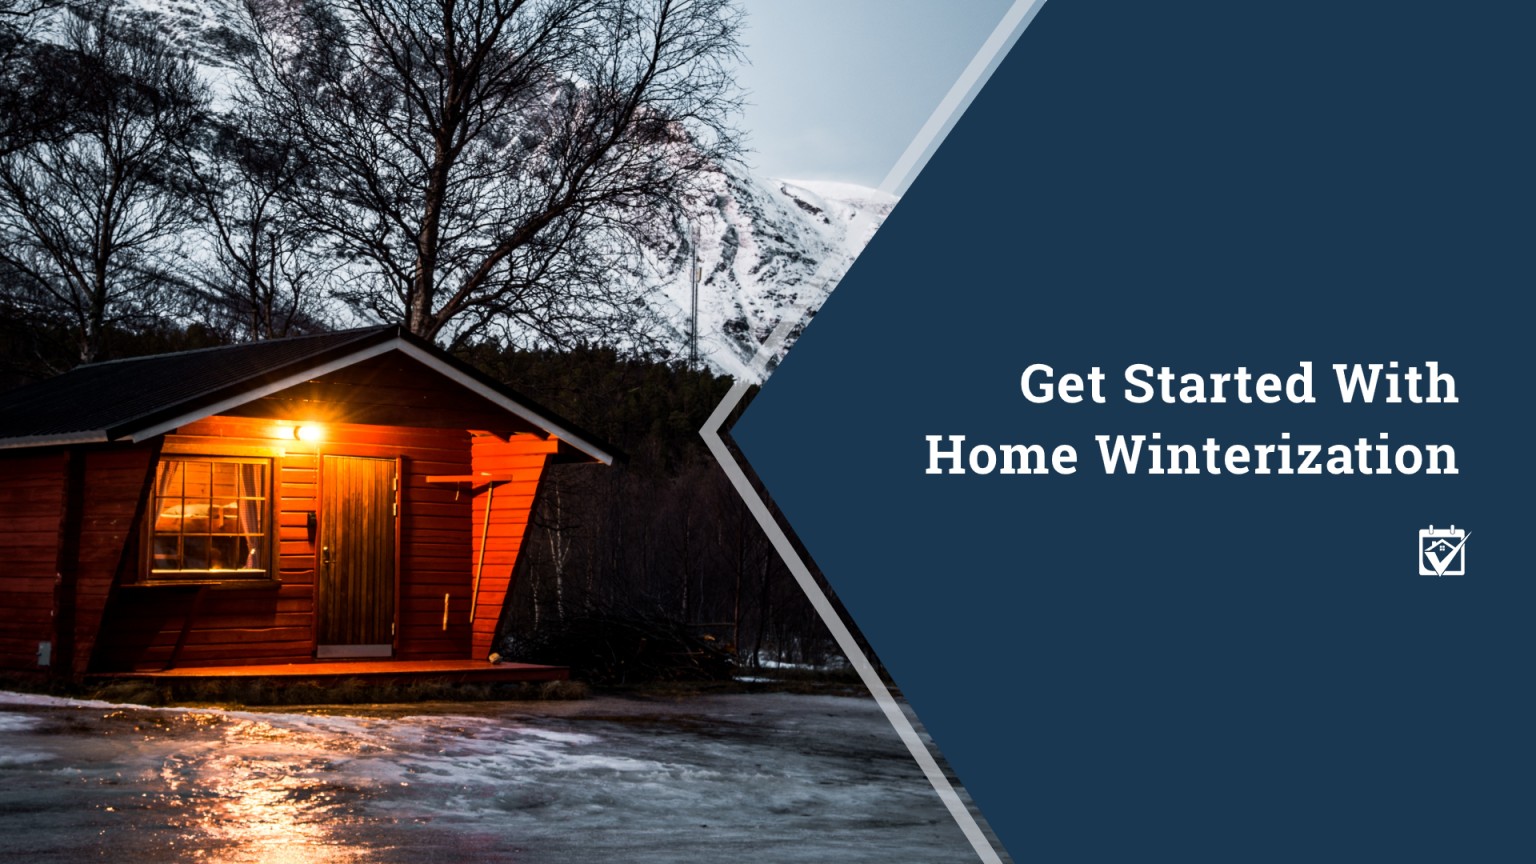 Get Started With Home Winterization